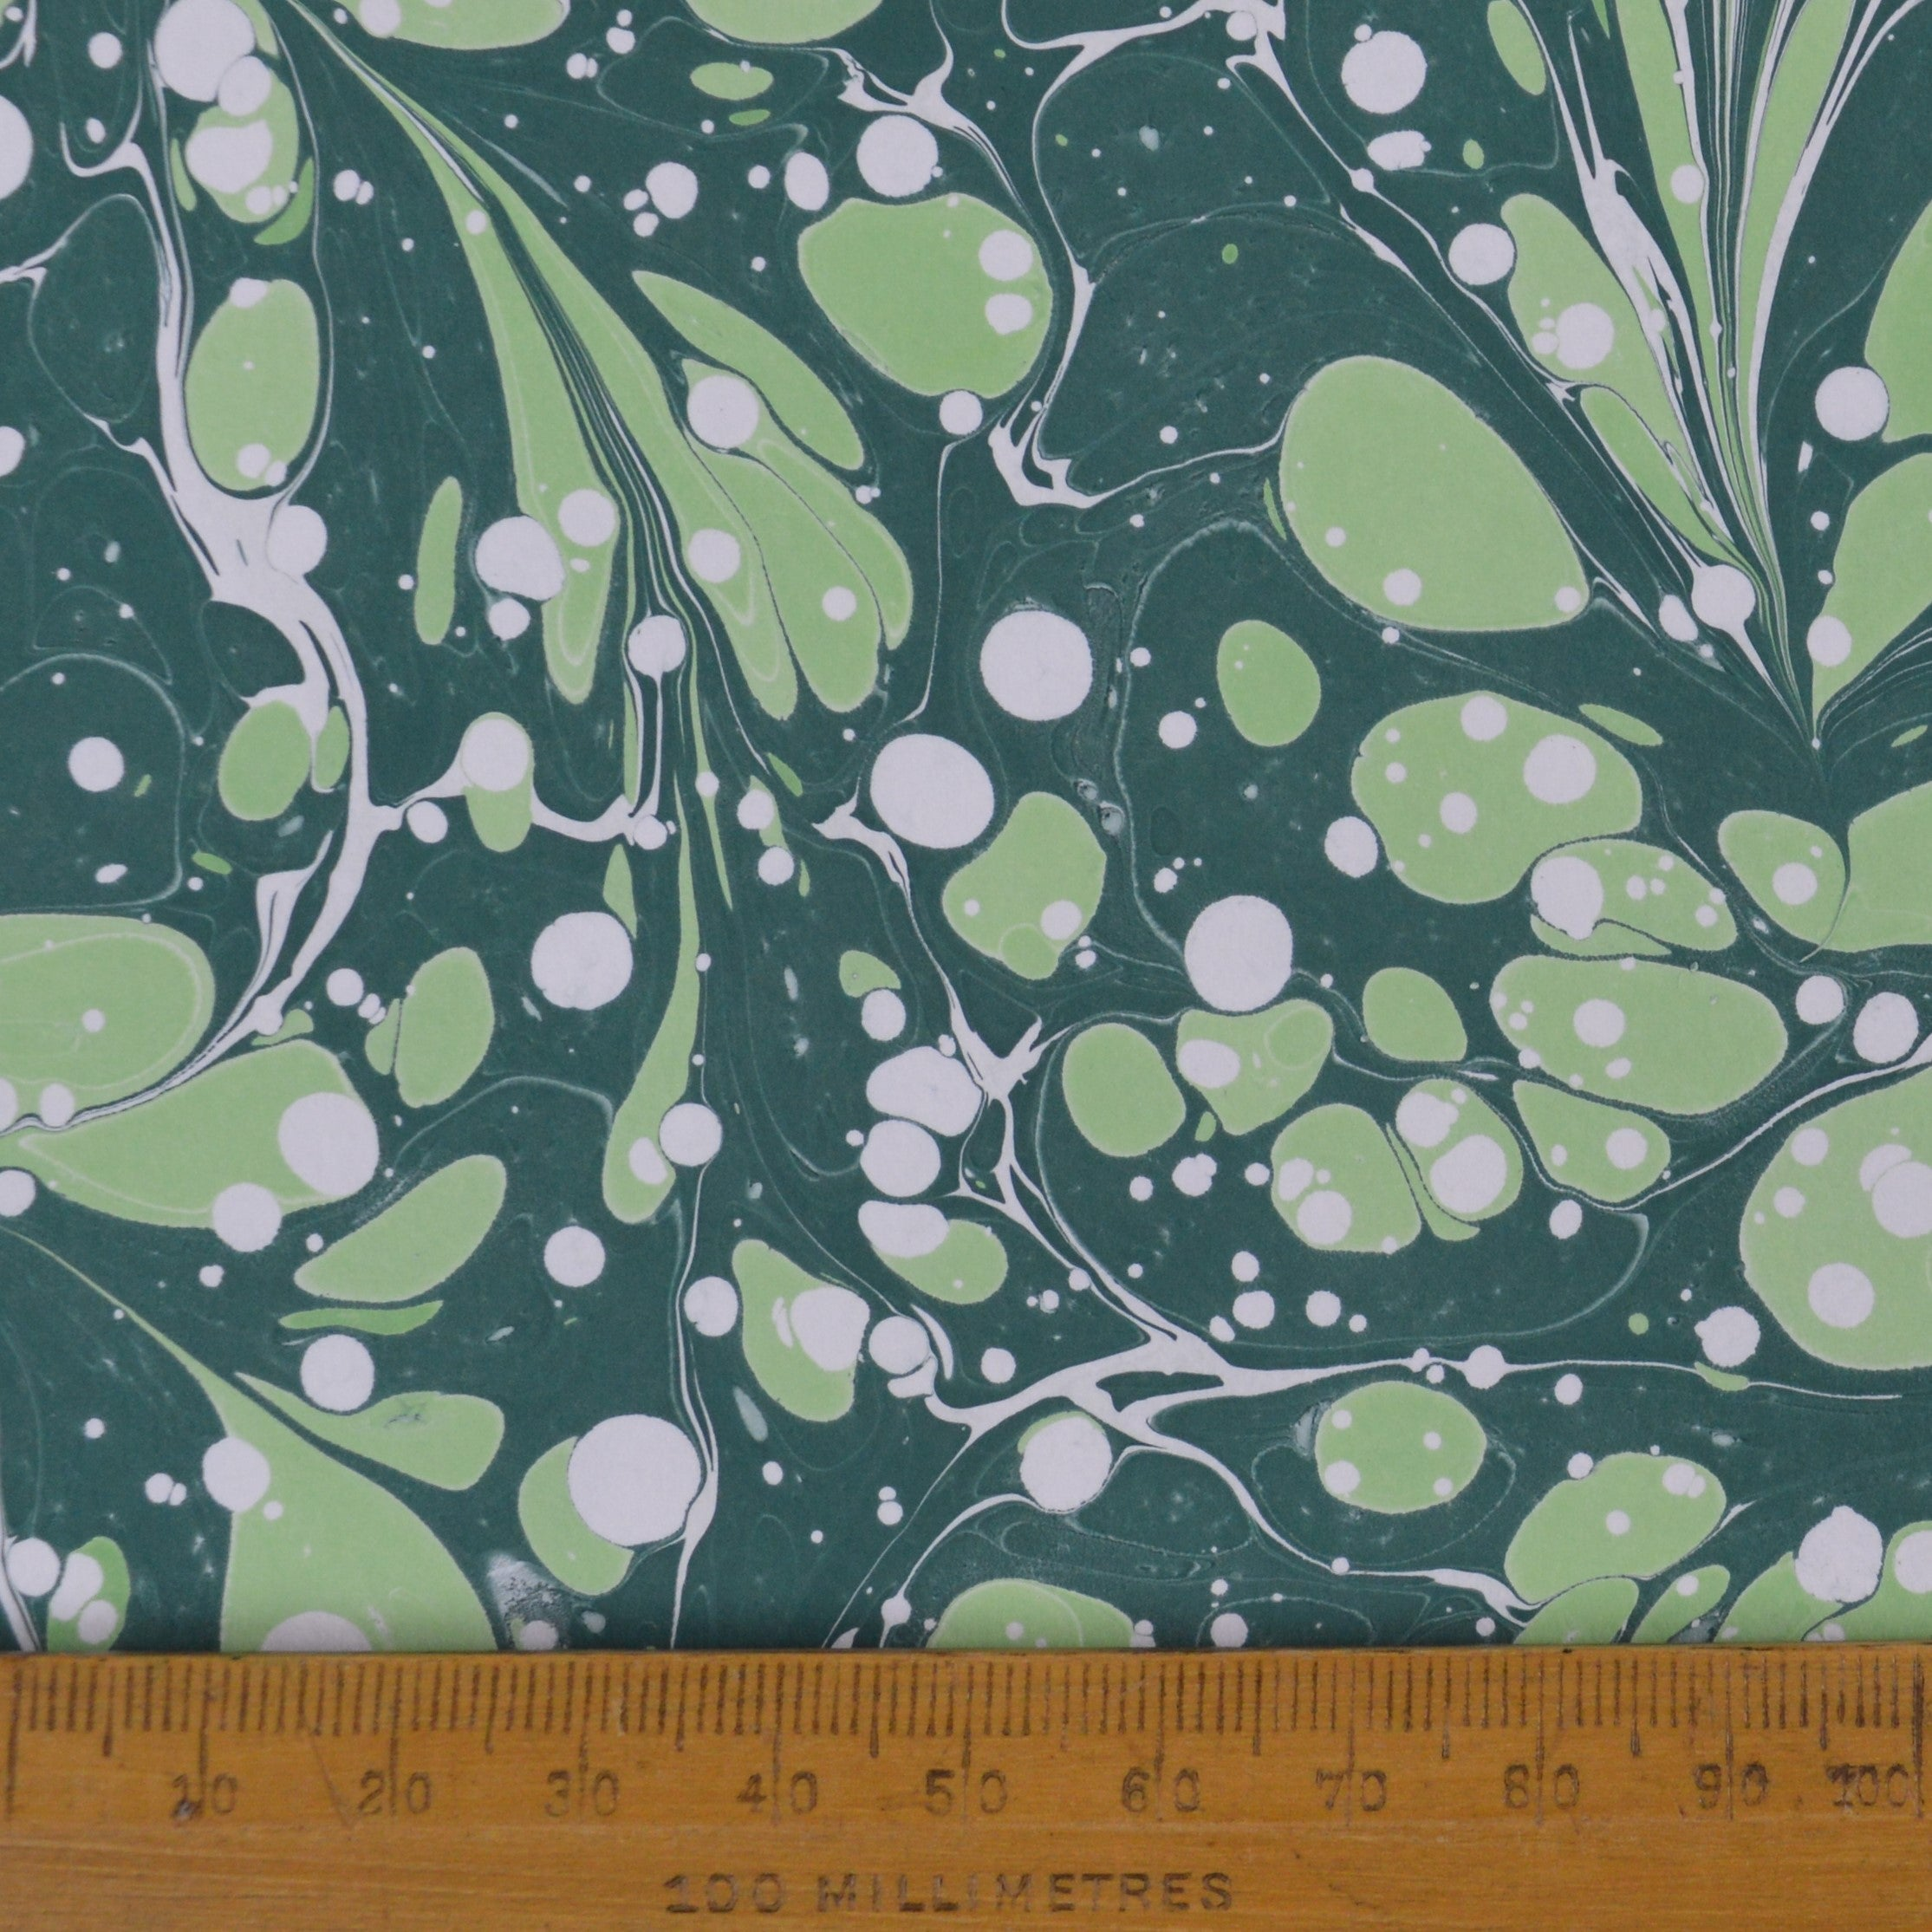 Munro and Kerr green marbled paper for a lampshade